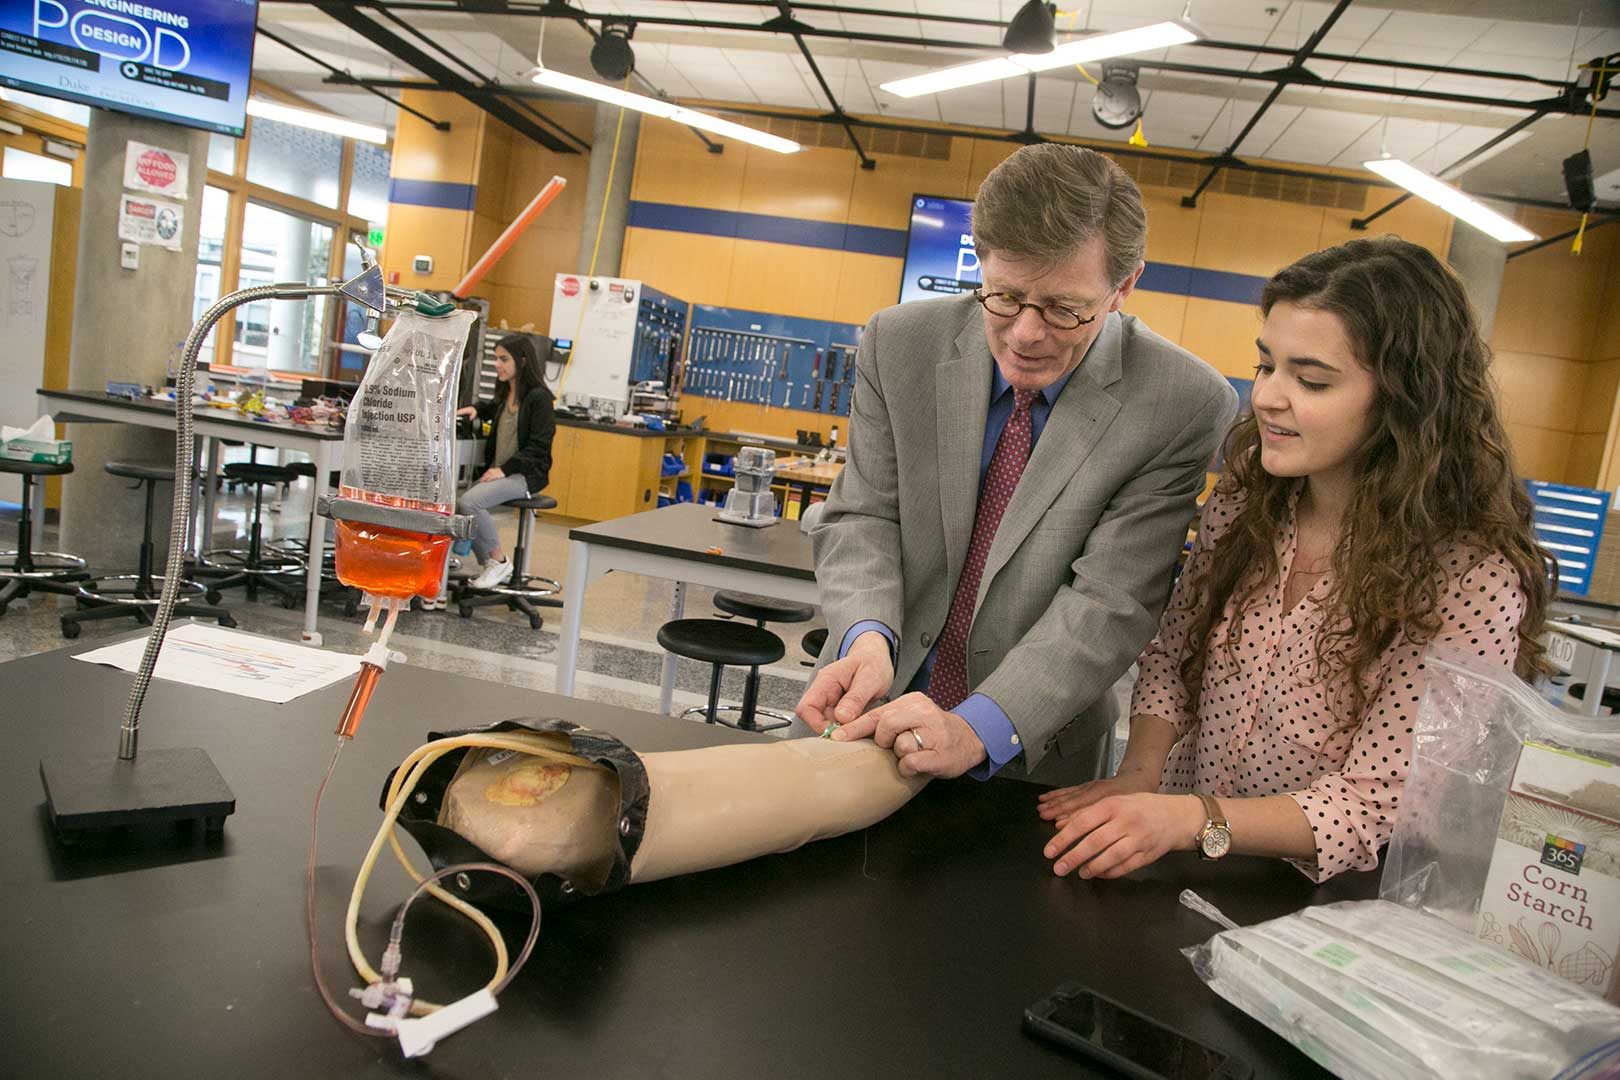 Vincent E. Price visits with a student working on a prosthetic arm at the Pratt School of Engineering's Design Pod.